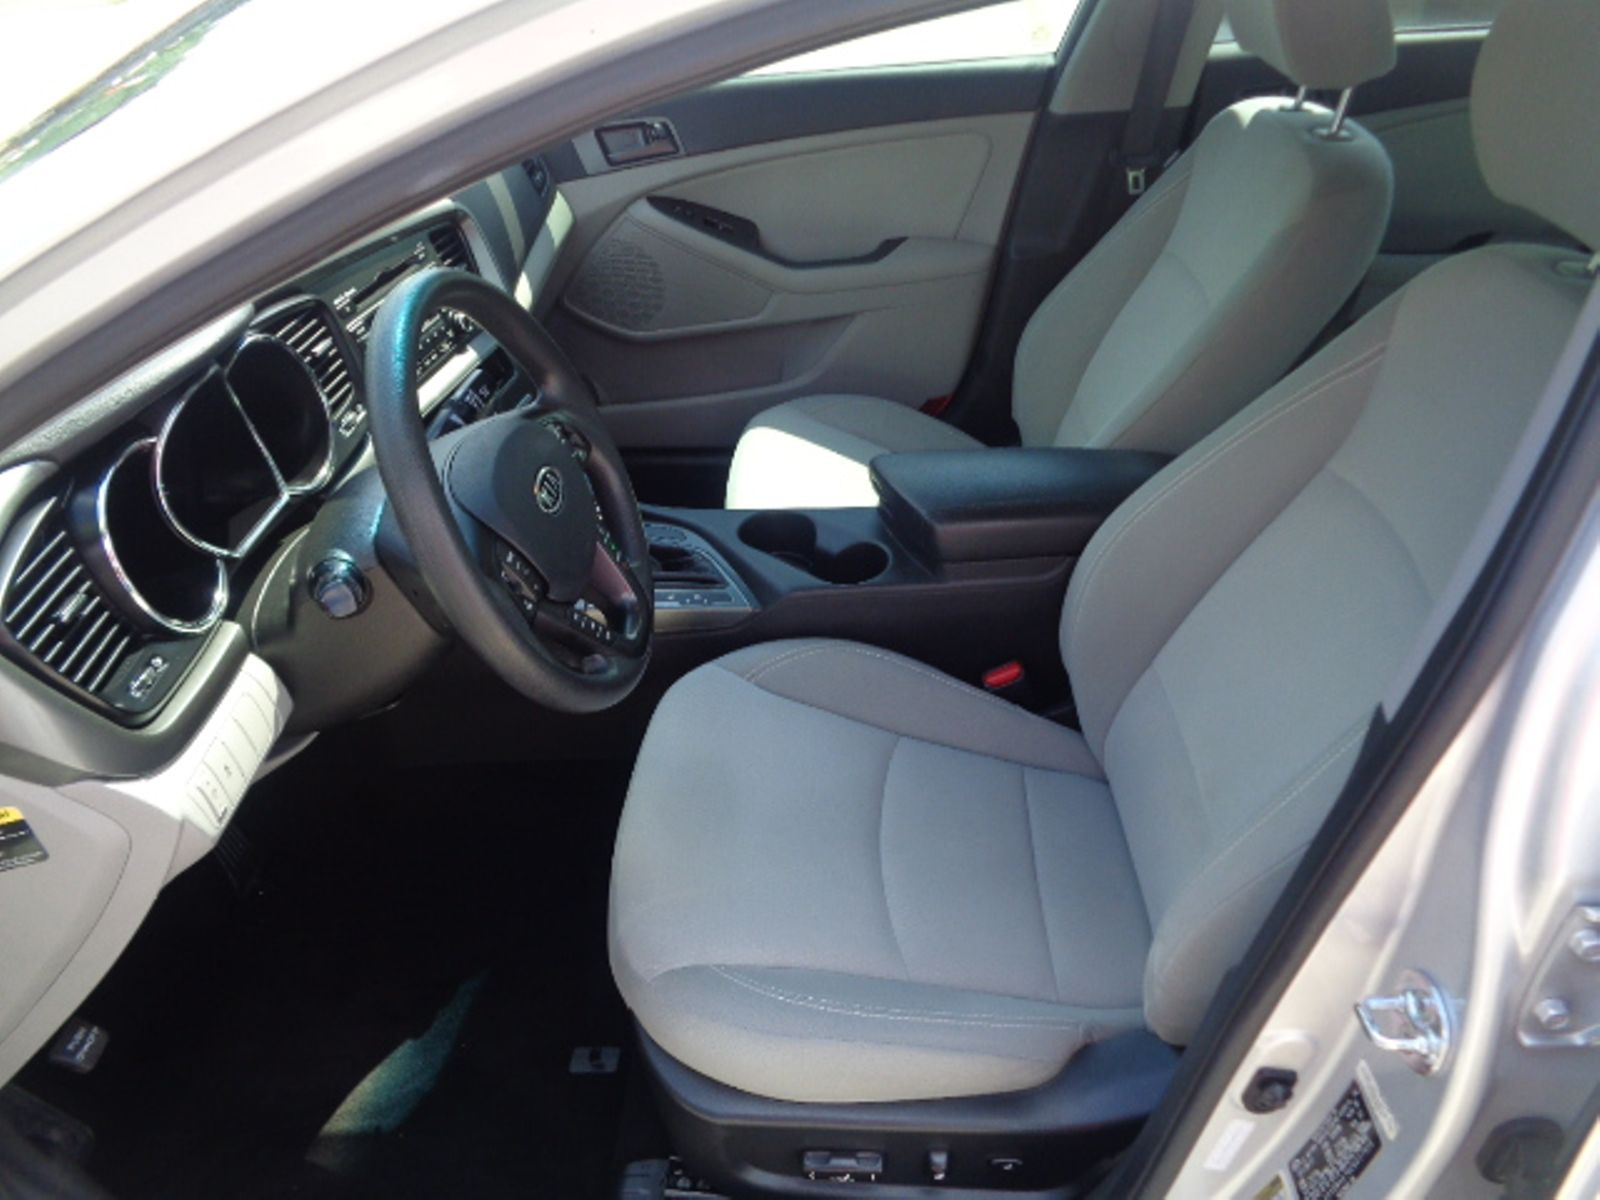 Kia Optima: Adjusting the height of front seat cushion